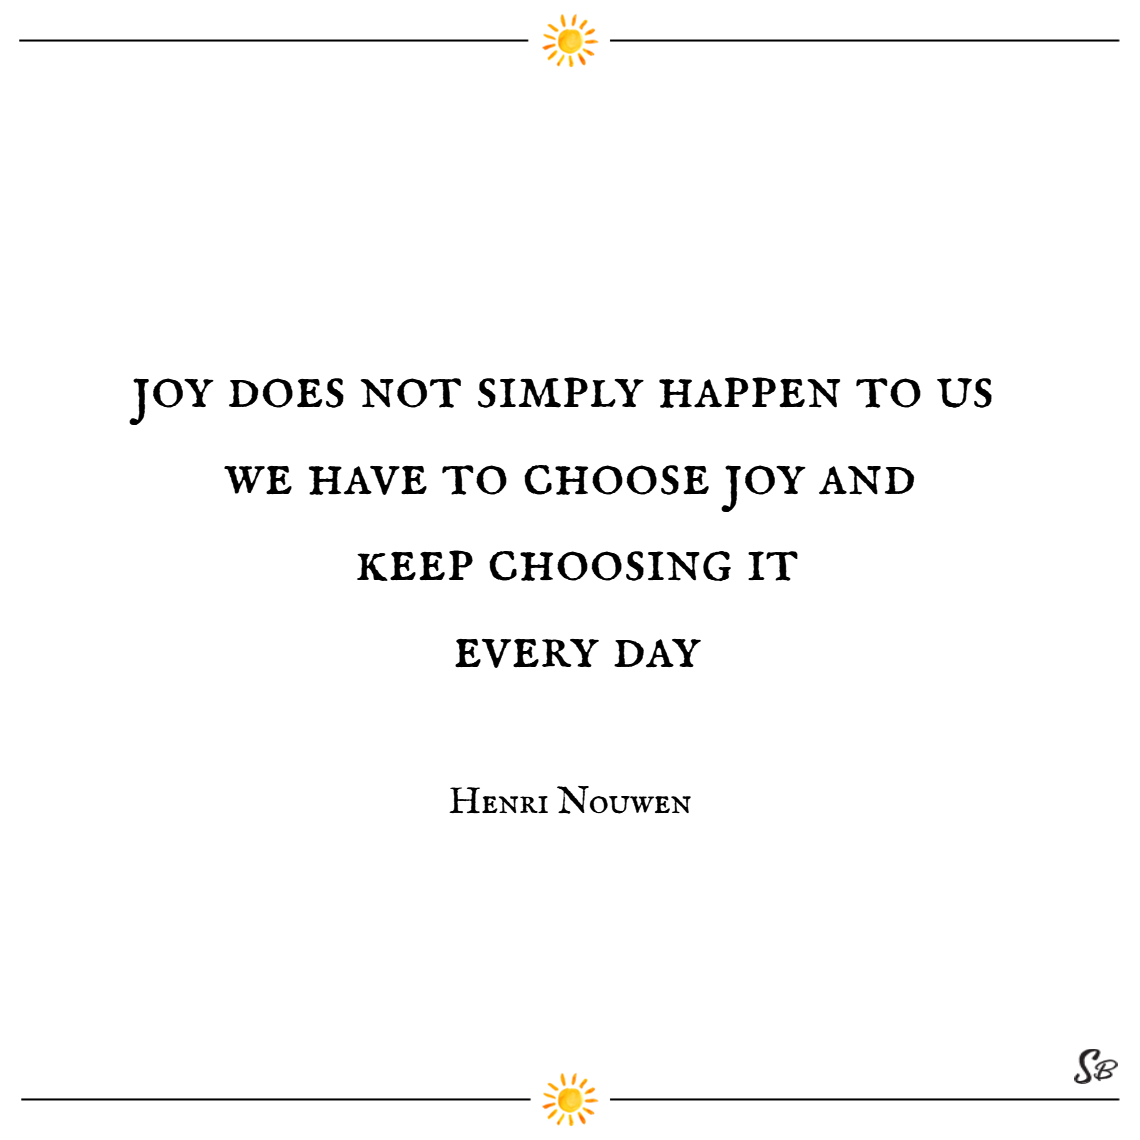 Joy does not simply happen to us. we have to choose joy and keep choosing it every day. – henri nouwen